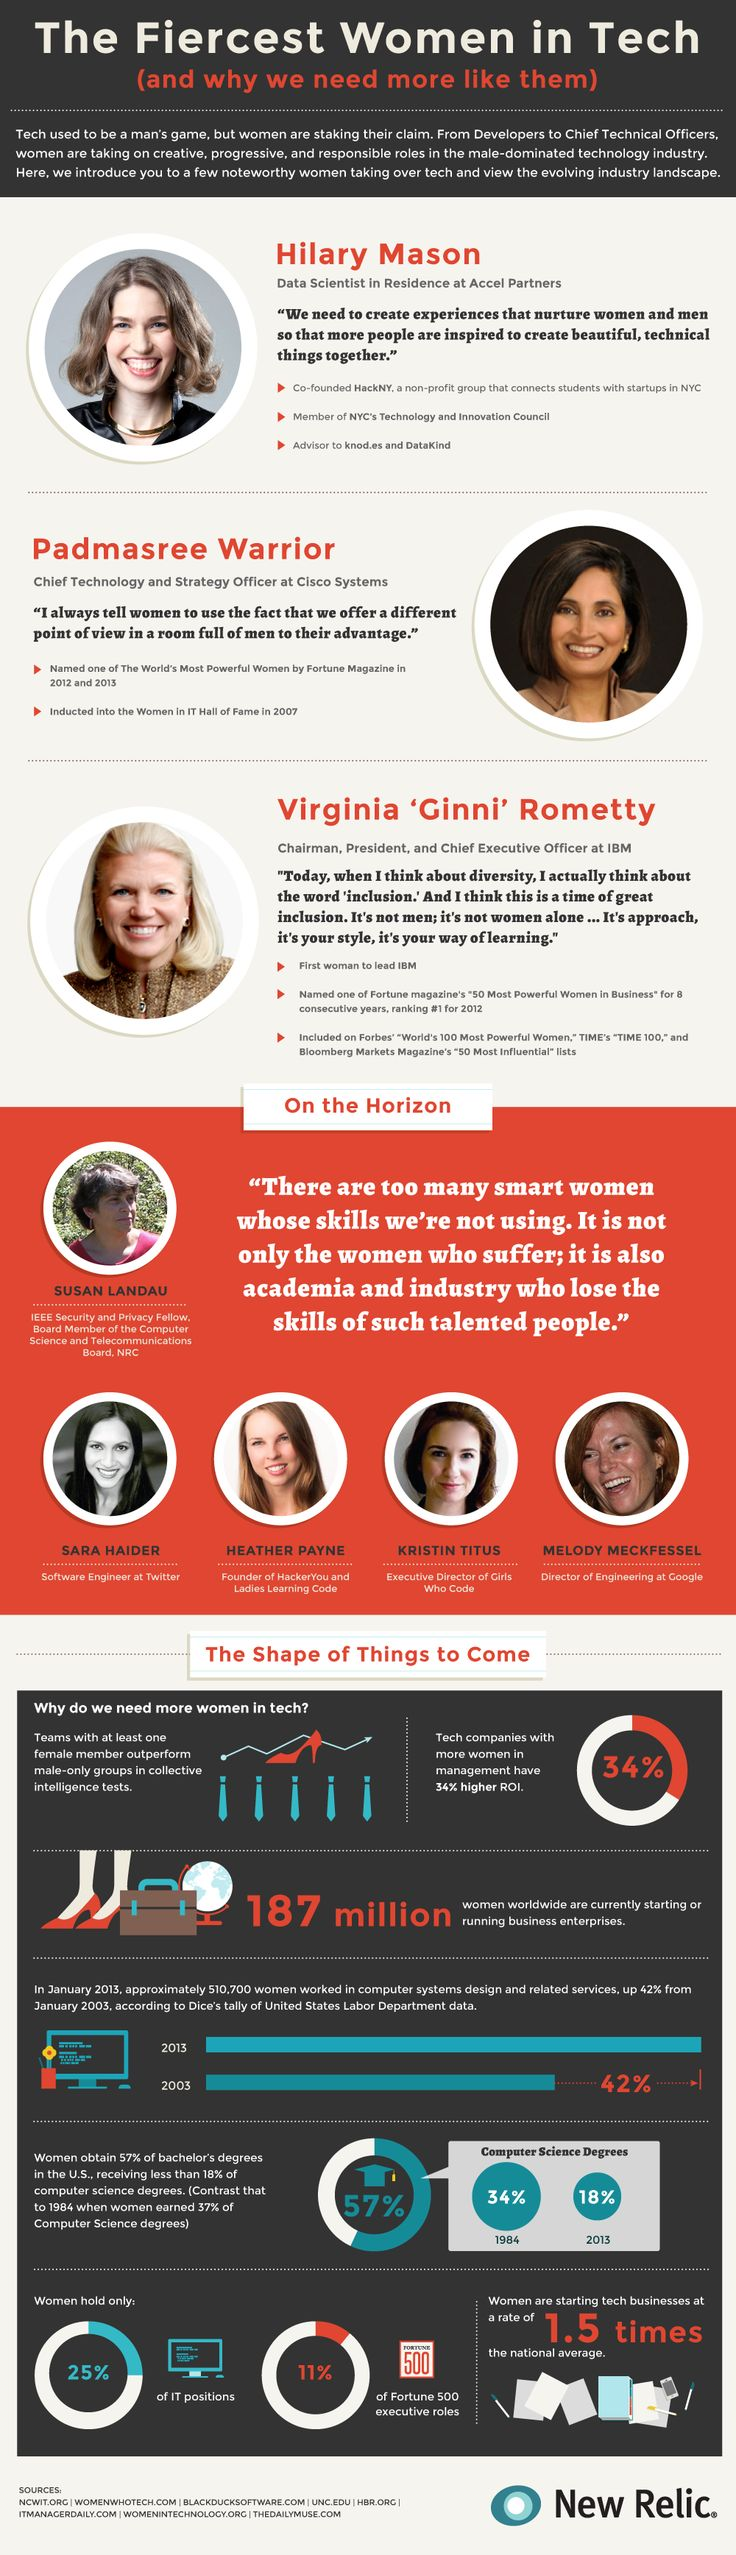 The Fiercest Women in Tech (and Why We Need More Like Them) - cos. with more women in management have 34% higher ROI, teams with at least one woman outperform all men teams on collective intelligence tests, 187 million women worldwide are currently starting or running business enterprises. If you are looking for diversity training, contact me - I work with the best and offer training in Diversity, Working Effectively in Global Environment, and Working Effectively with India.